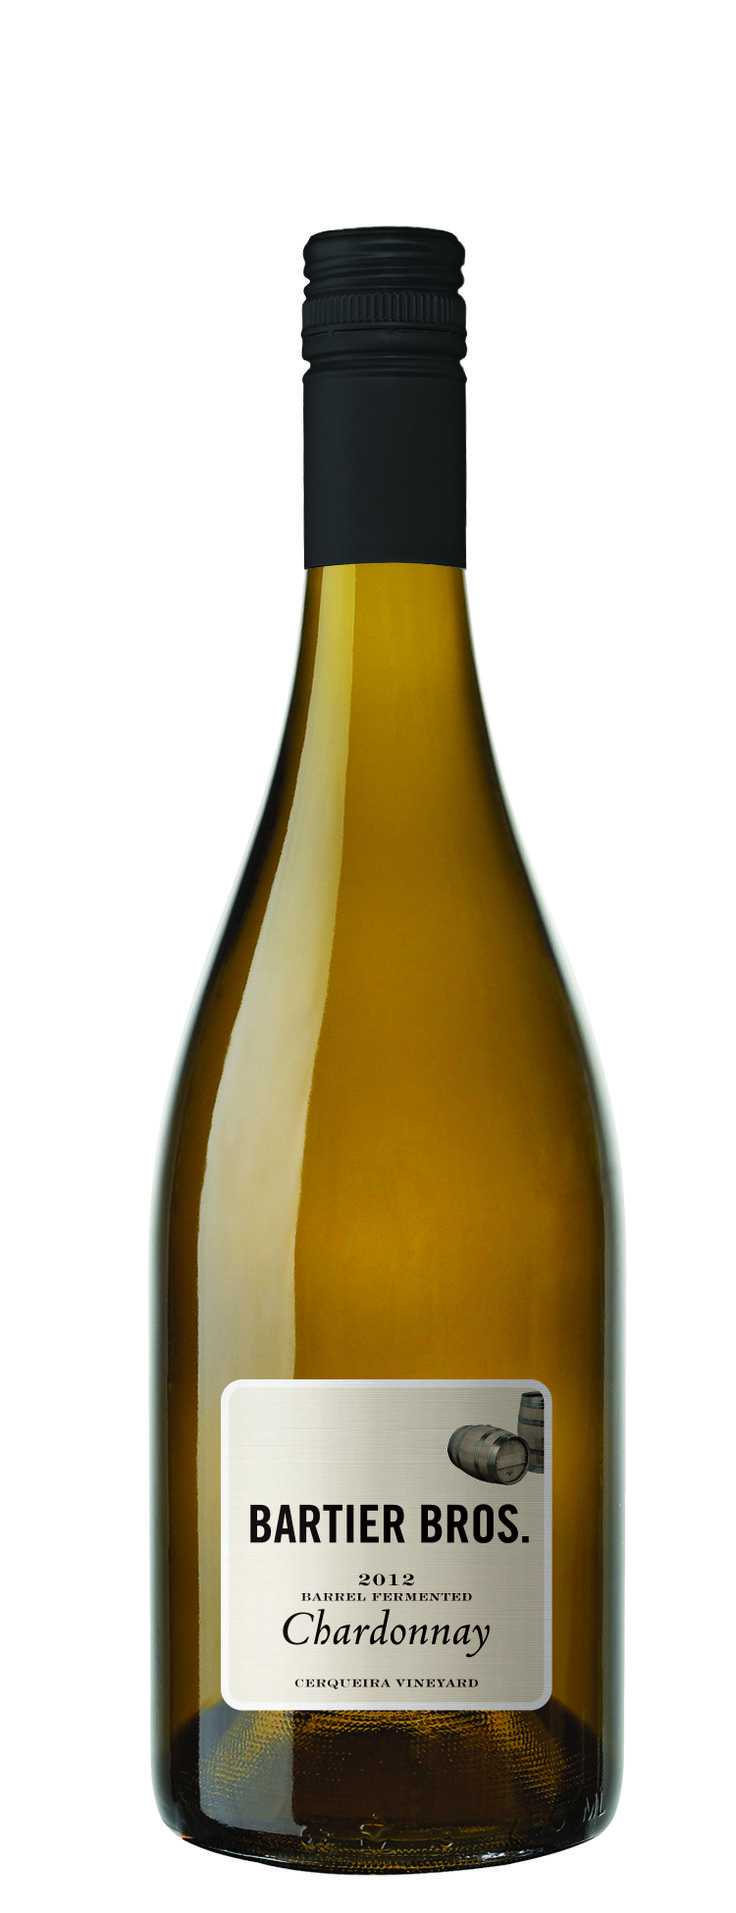 Bartier Bros. - 2012 Barrel Fermented Chardonnay - Fresh tropical fruit aromas with a stoney note. Quite full bodied and soft on the palate. Very matched with white meats or pasta in cream sauces or with lobster or crab. #bcwine #wine #okanagan #bc